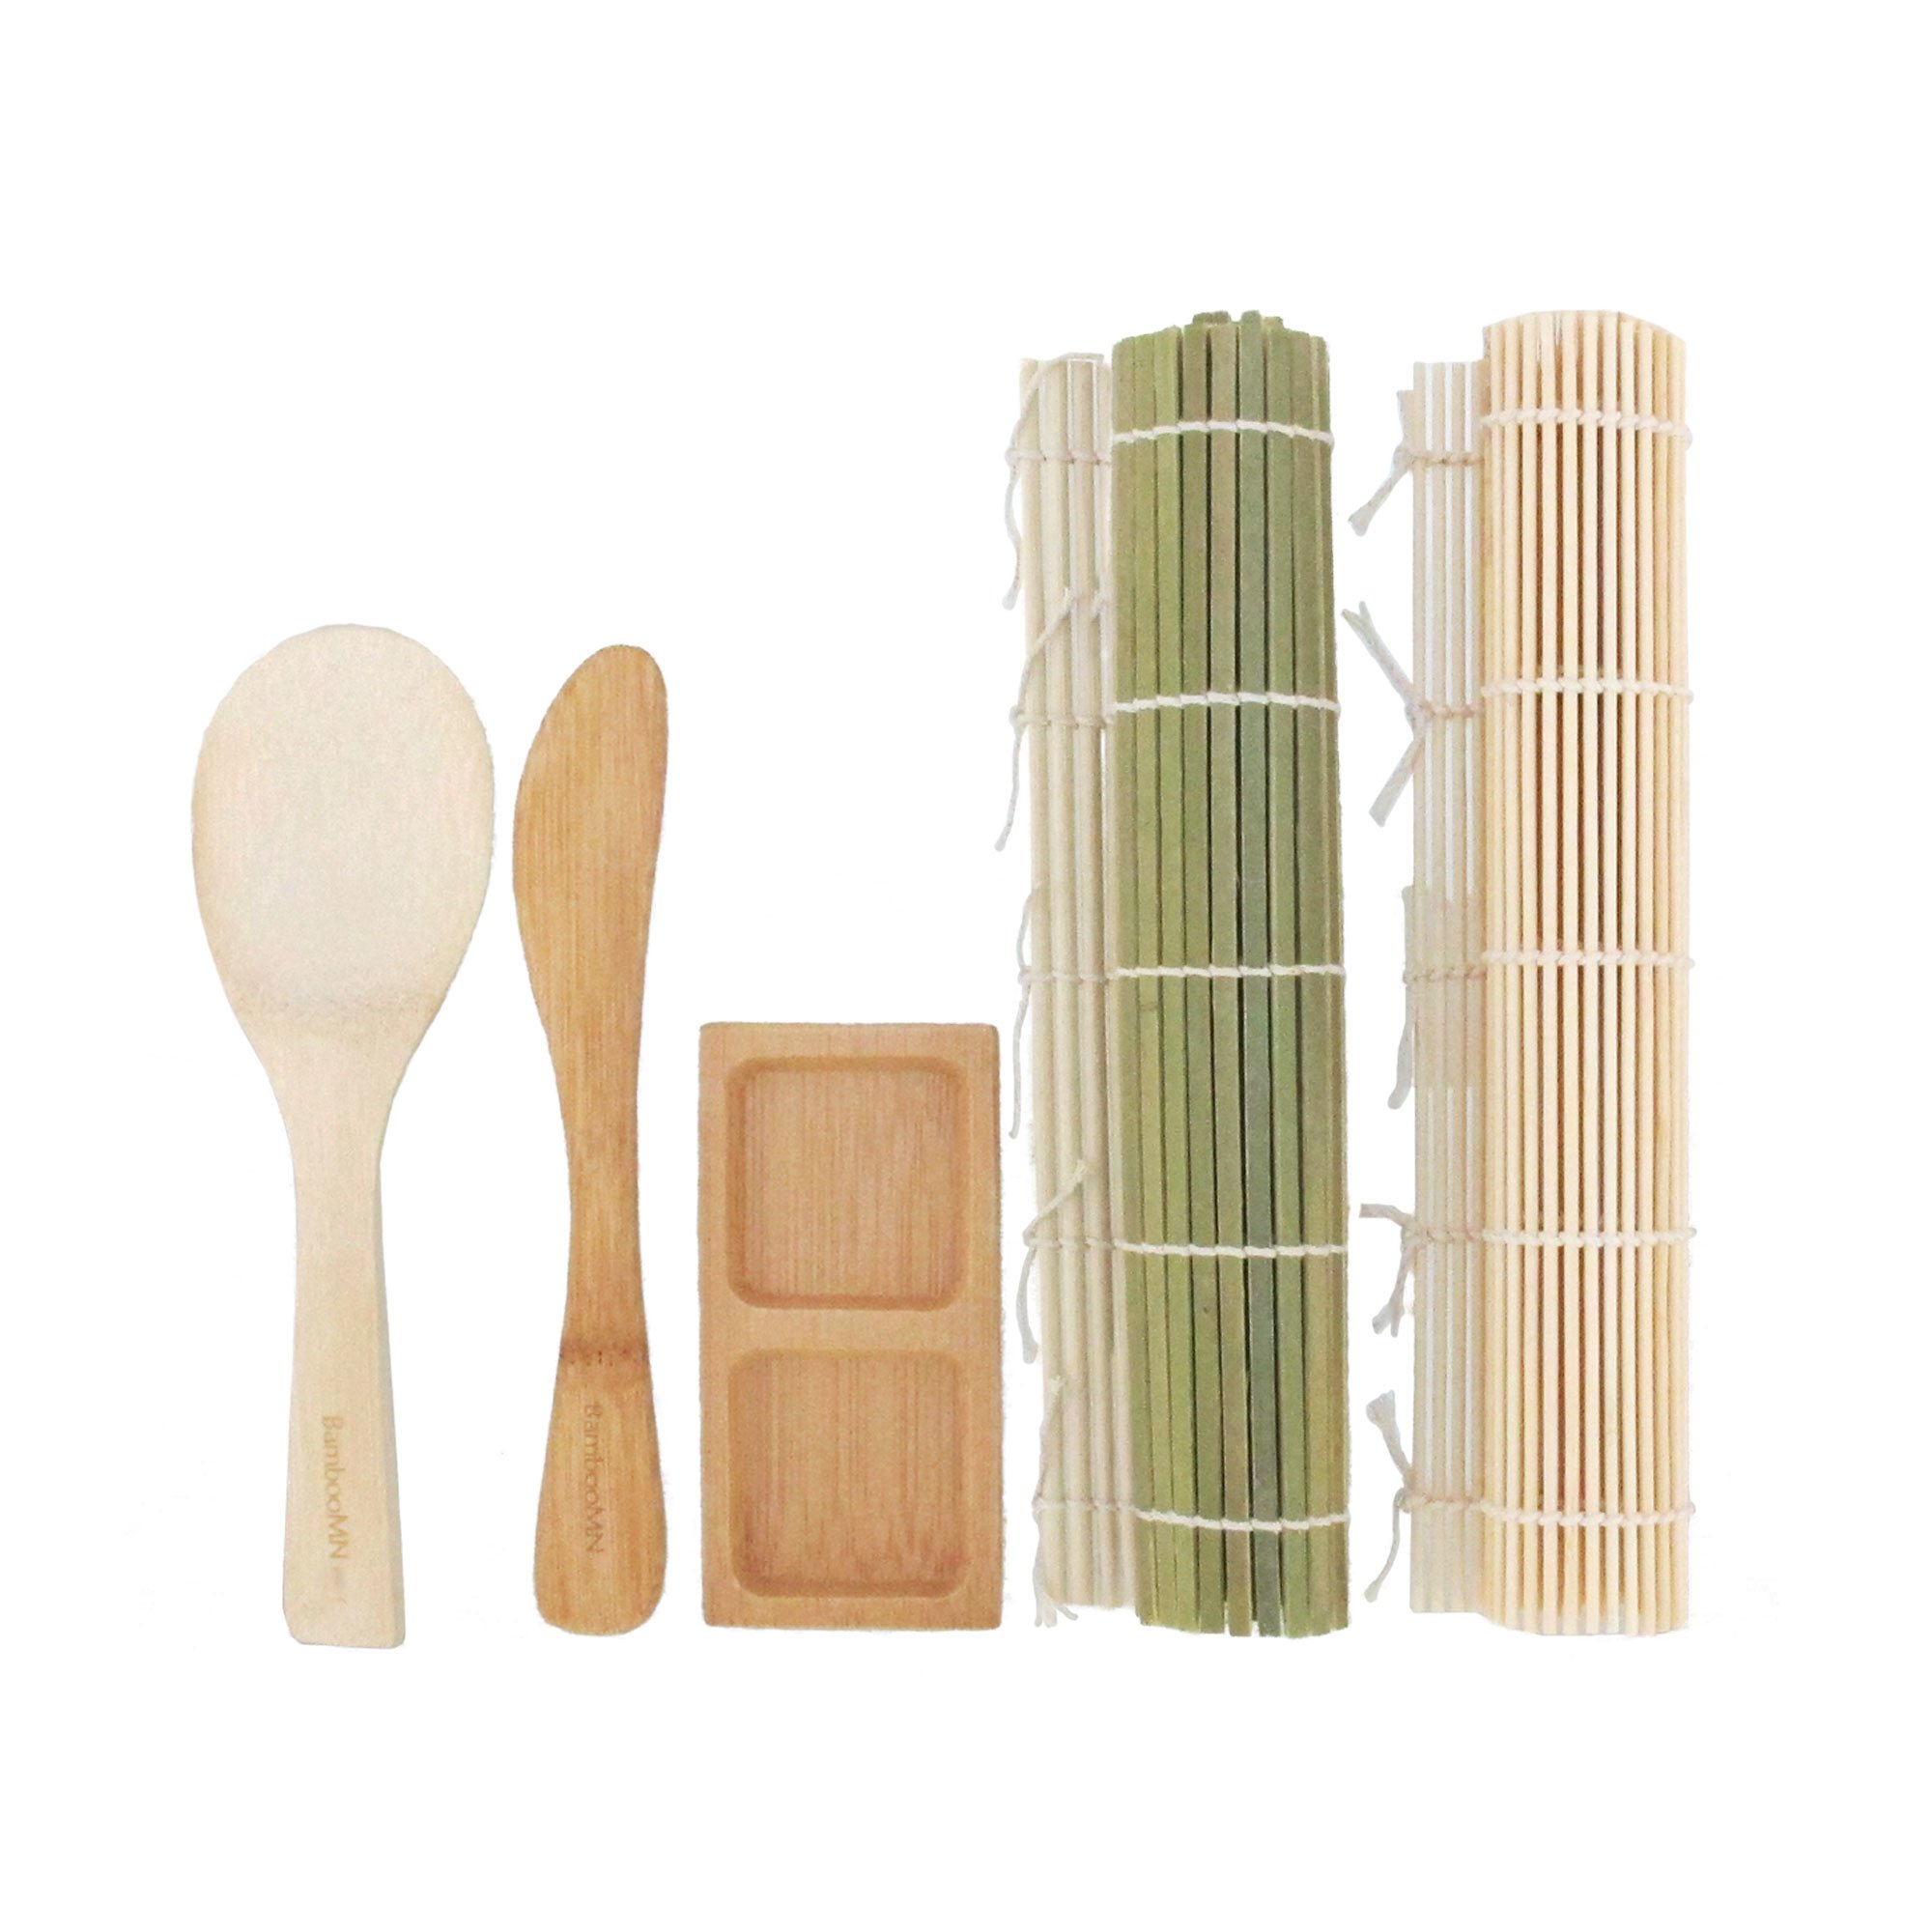 BambooMN Deluxe Sushi Maker Kit 2 SETS of 2x Rolling Mats, 1x Rice Paddle, 1x Spreader, 1x Compartment Sauce Dish | 100% Bamboo Mats and Utensils by BambooMN (Image #2)